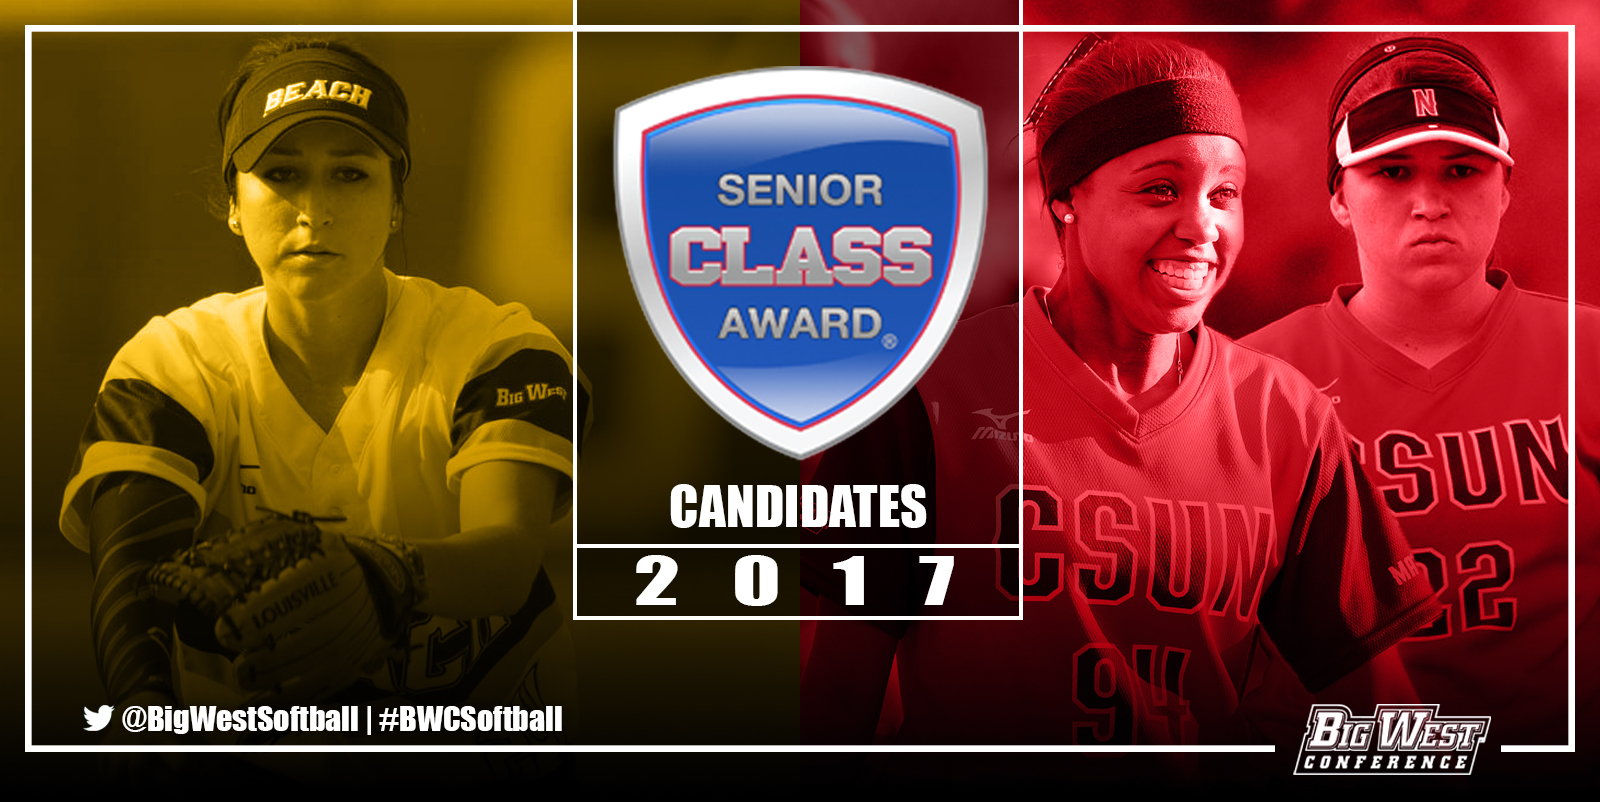 Three Big West Players Candidates For Softball Senior CLASS Award